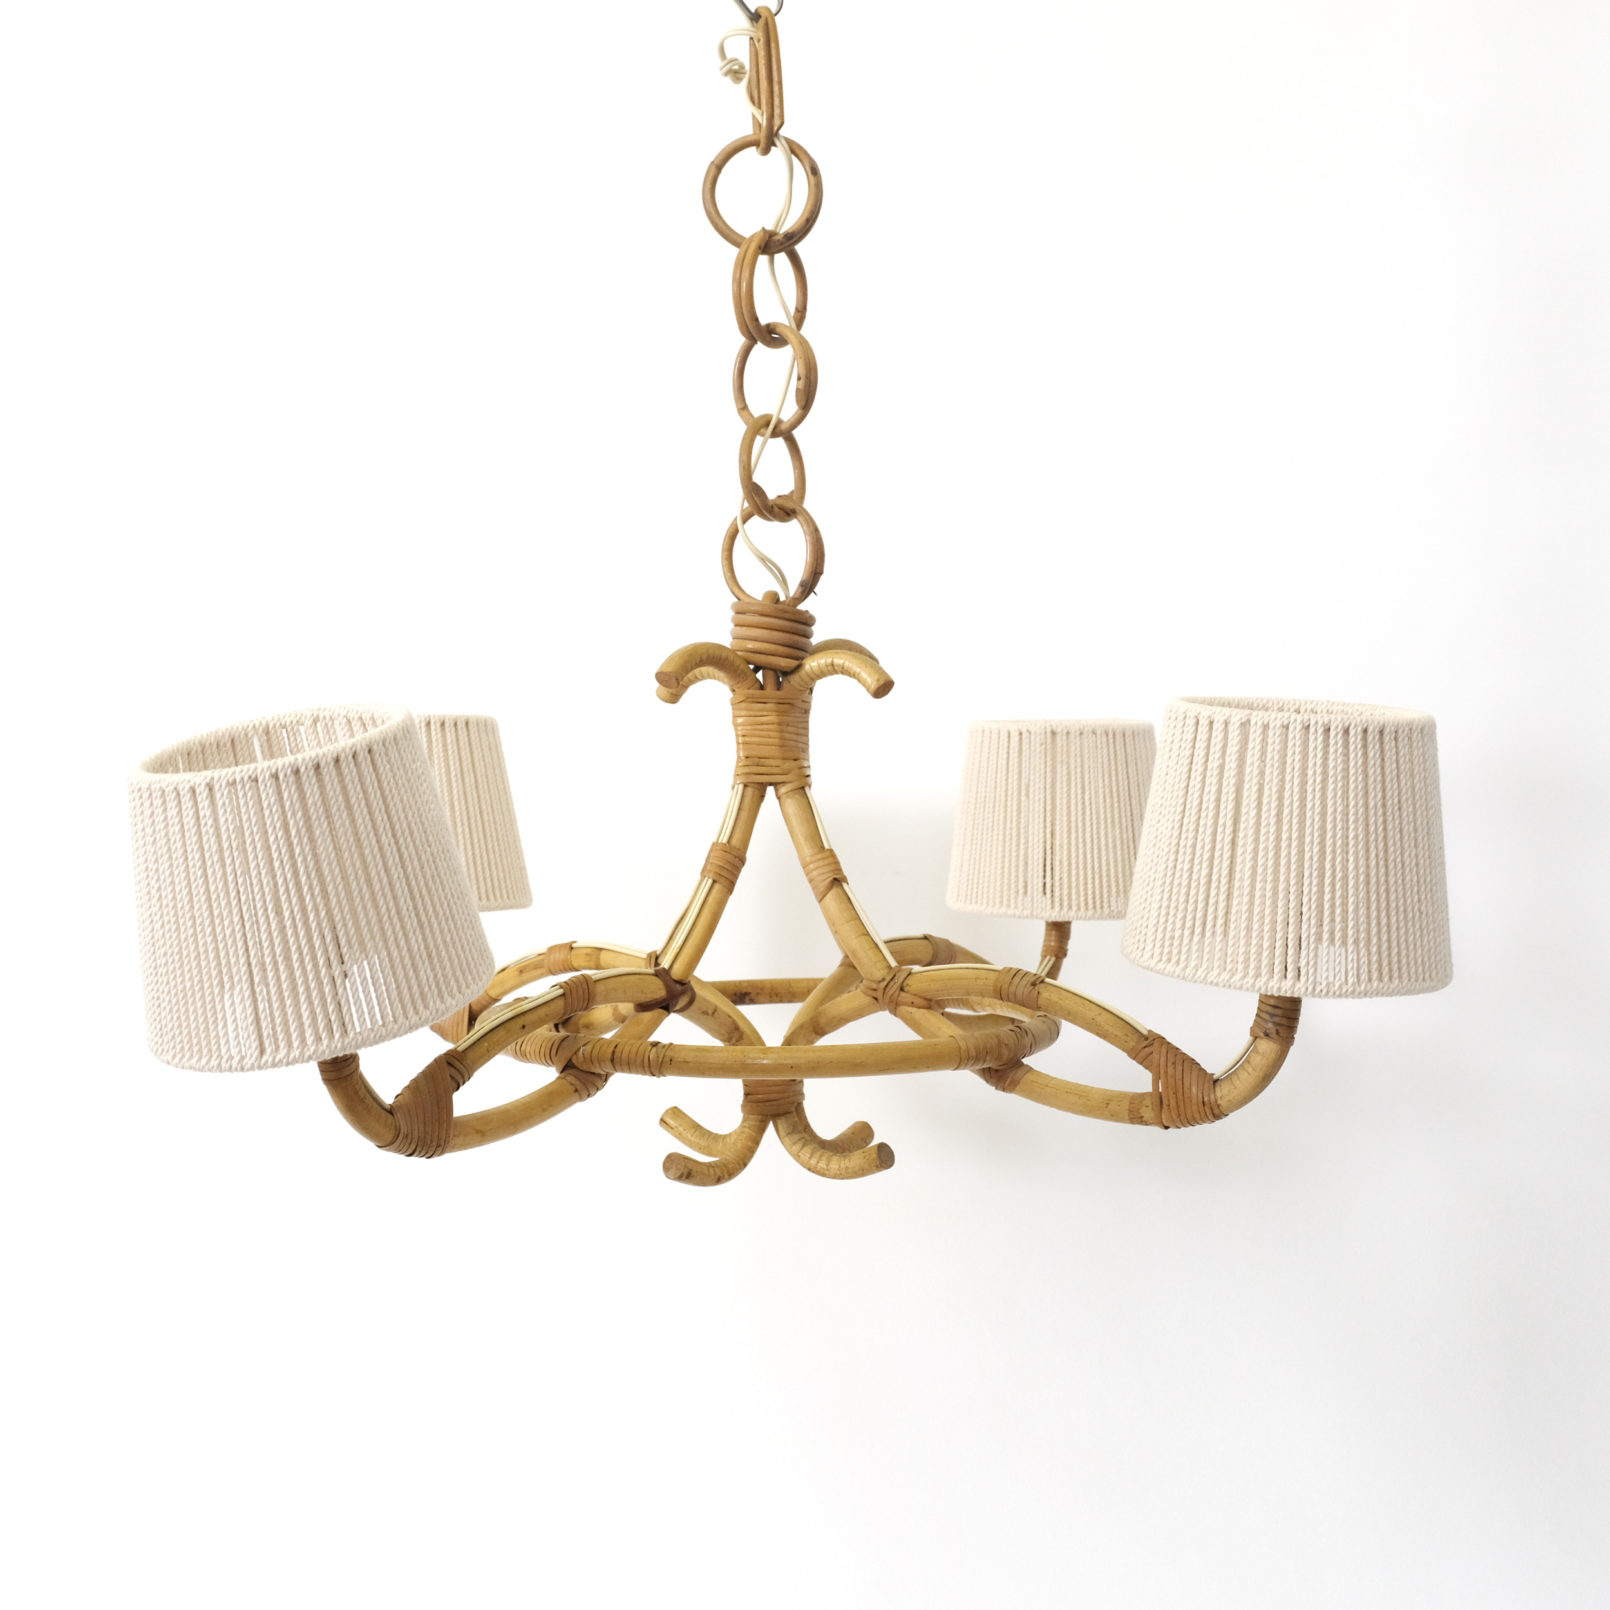 Rattan and rope pendant with 4 lights, 1960-1970.